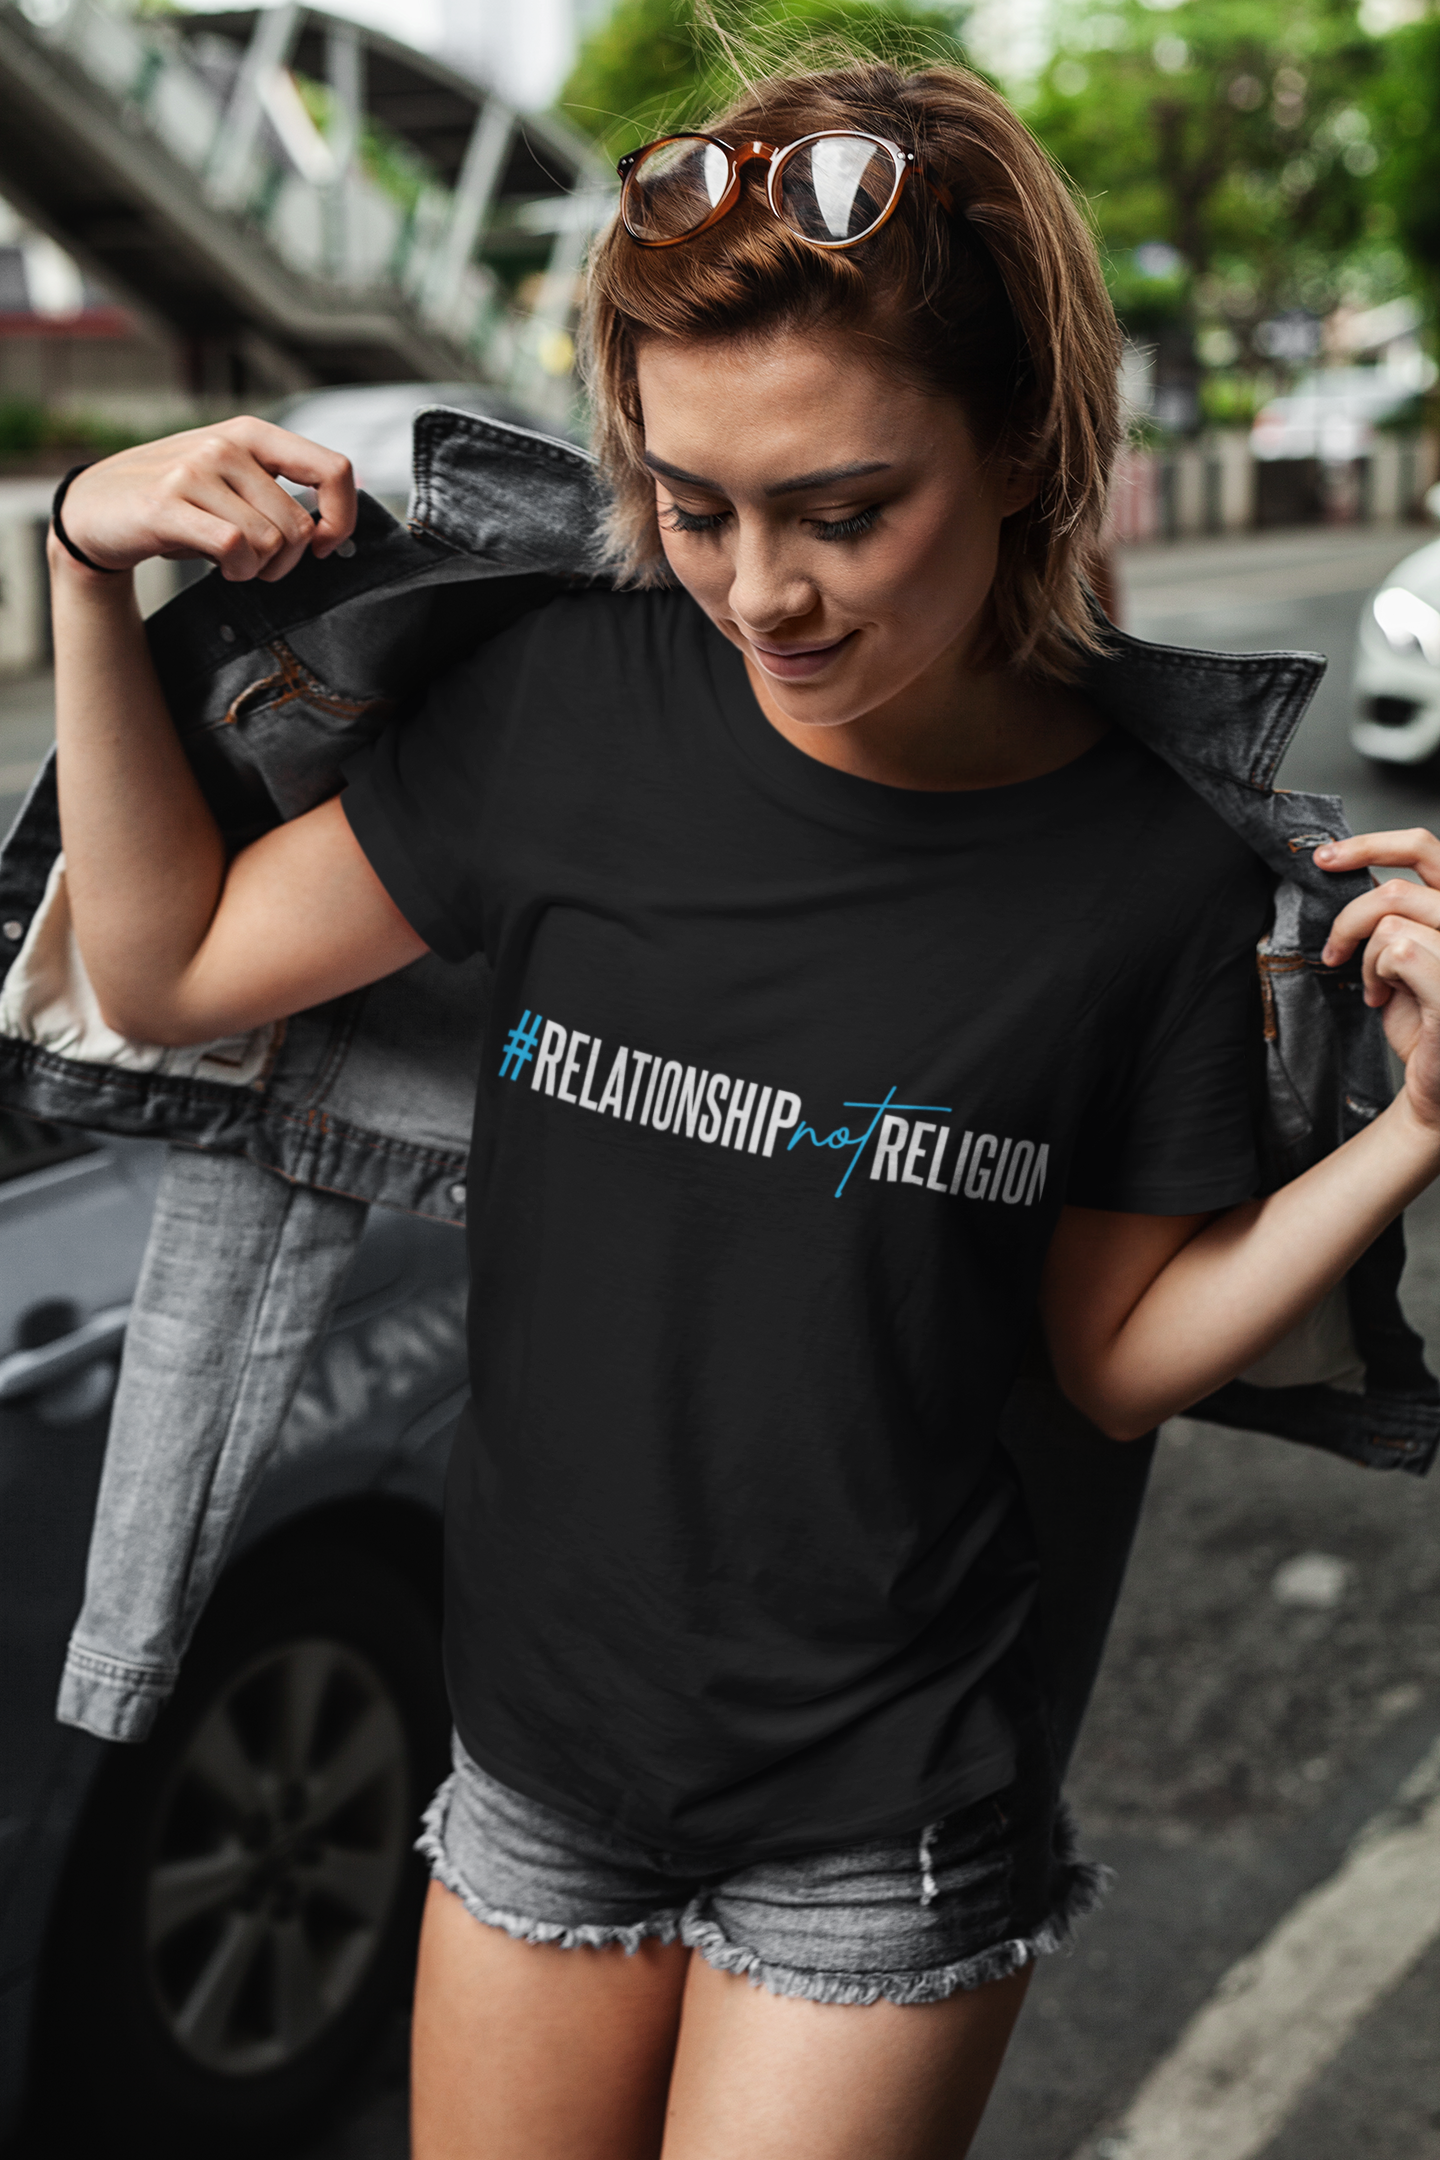 t-shirt-mockup-featuring-a-short-haired-woman-at-a-city-street-417-el